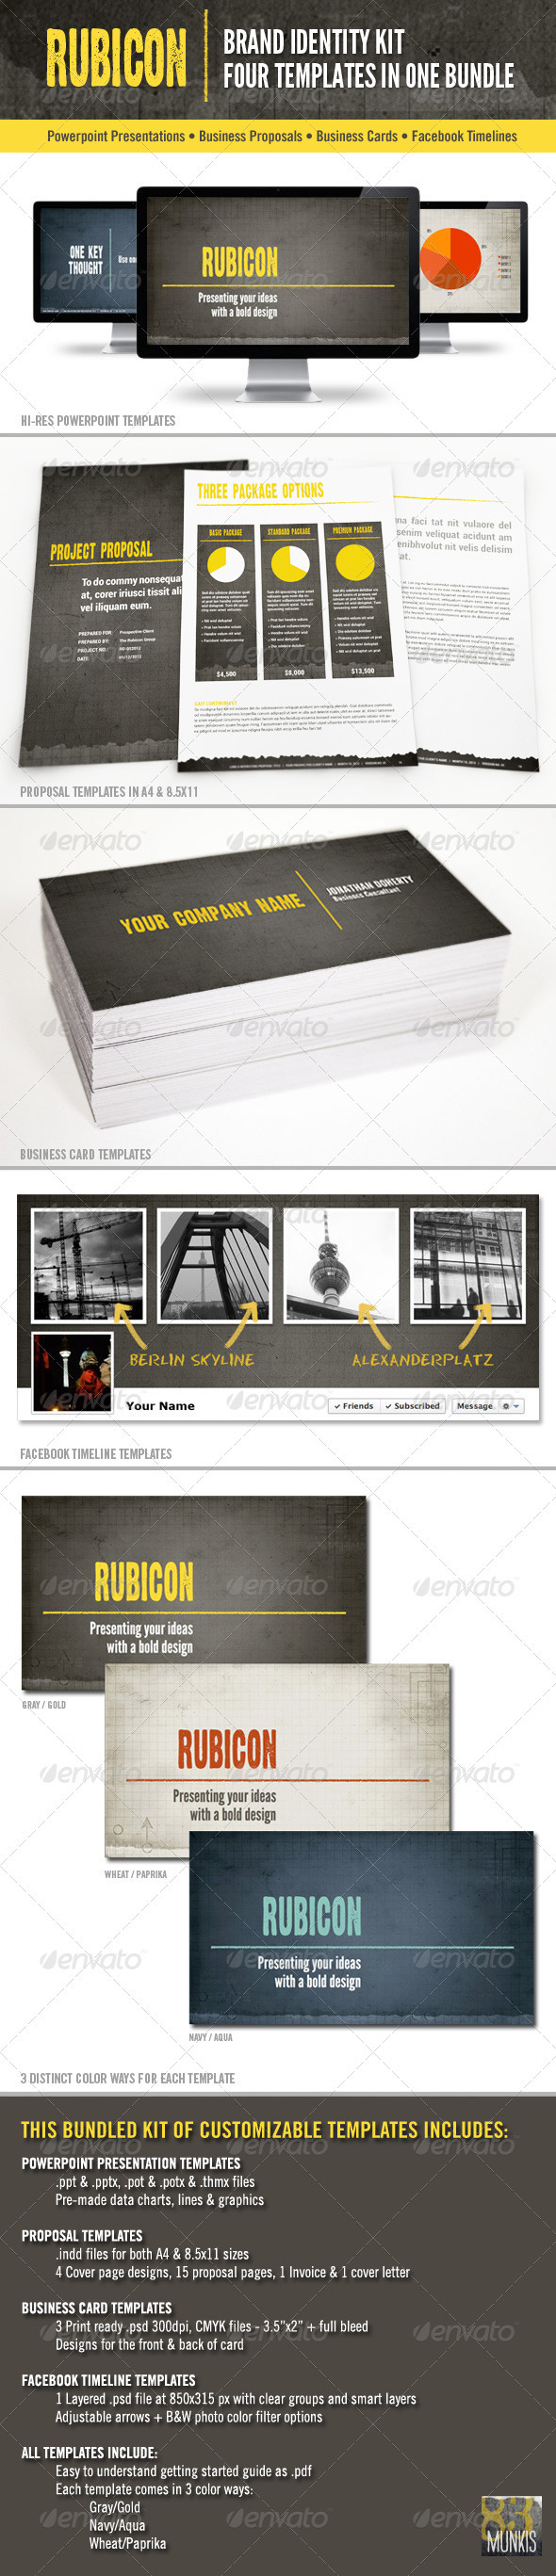 GraphicRiver Rubicon Branded Identity Kit Bundle 2201744